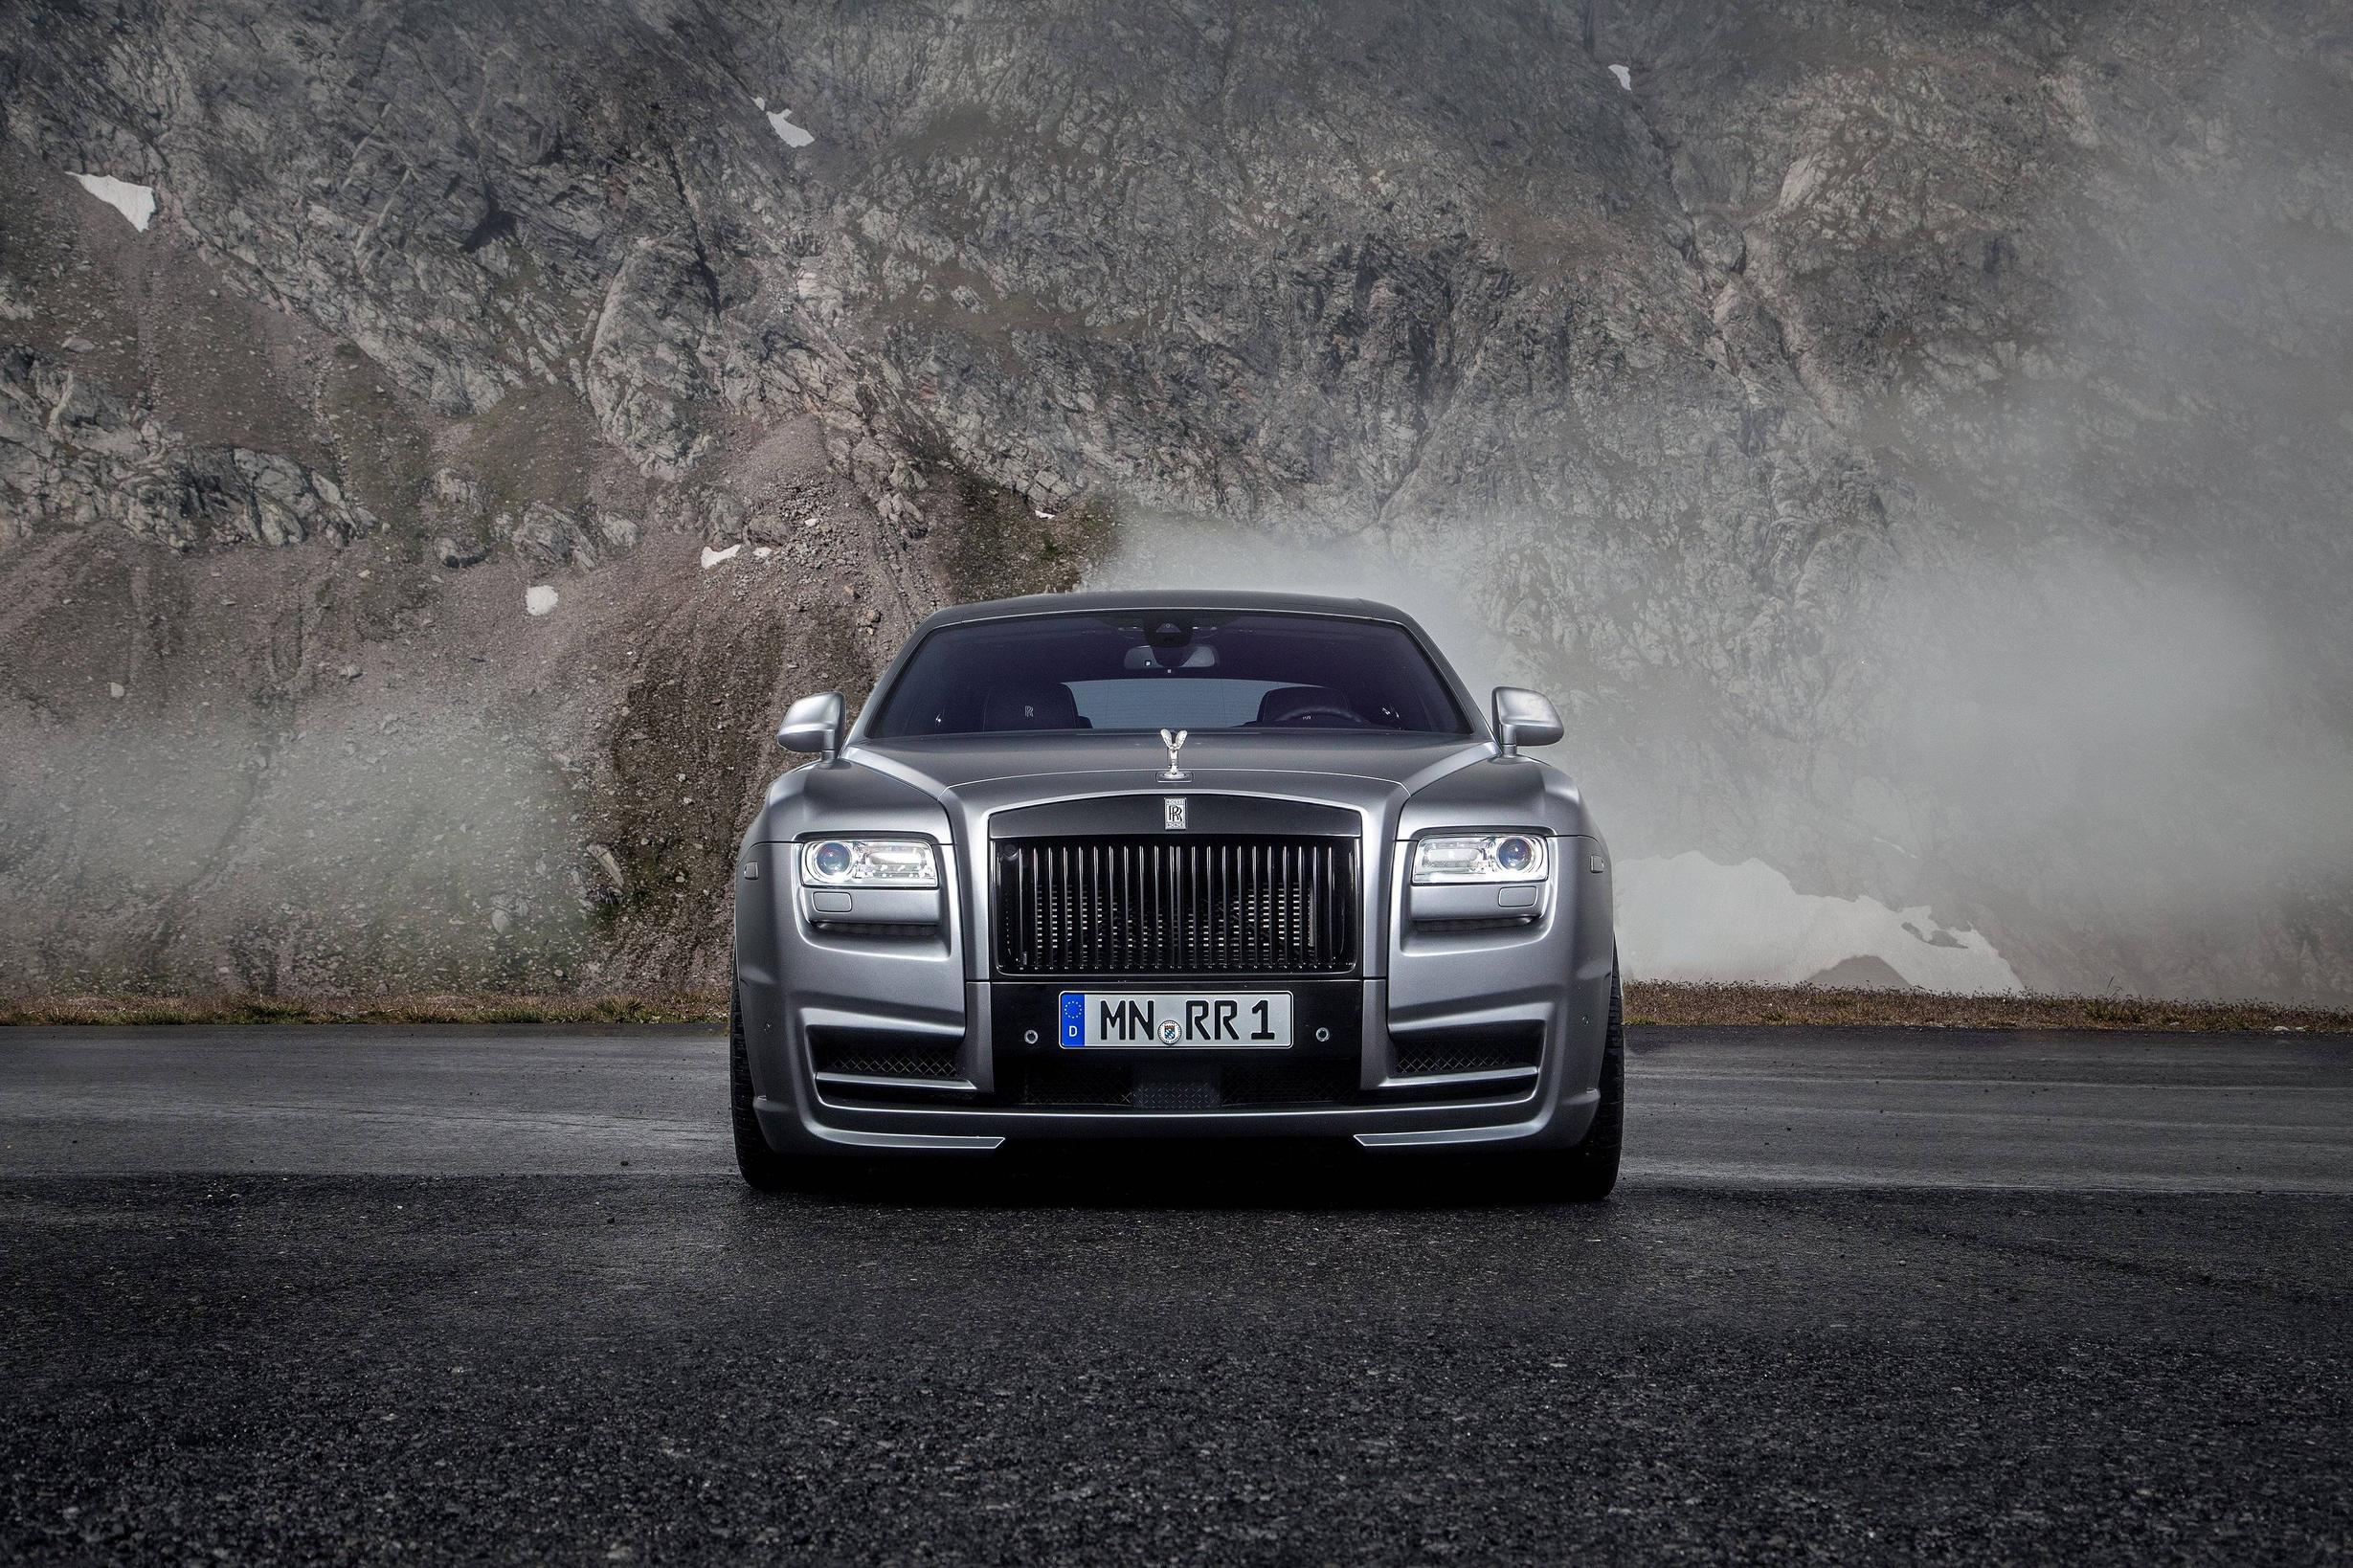 Rolls Royce Sweptail HD Cars k Wallpapers Images Backgrounds